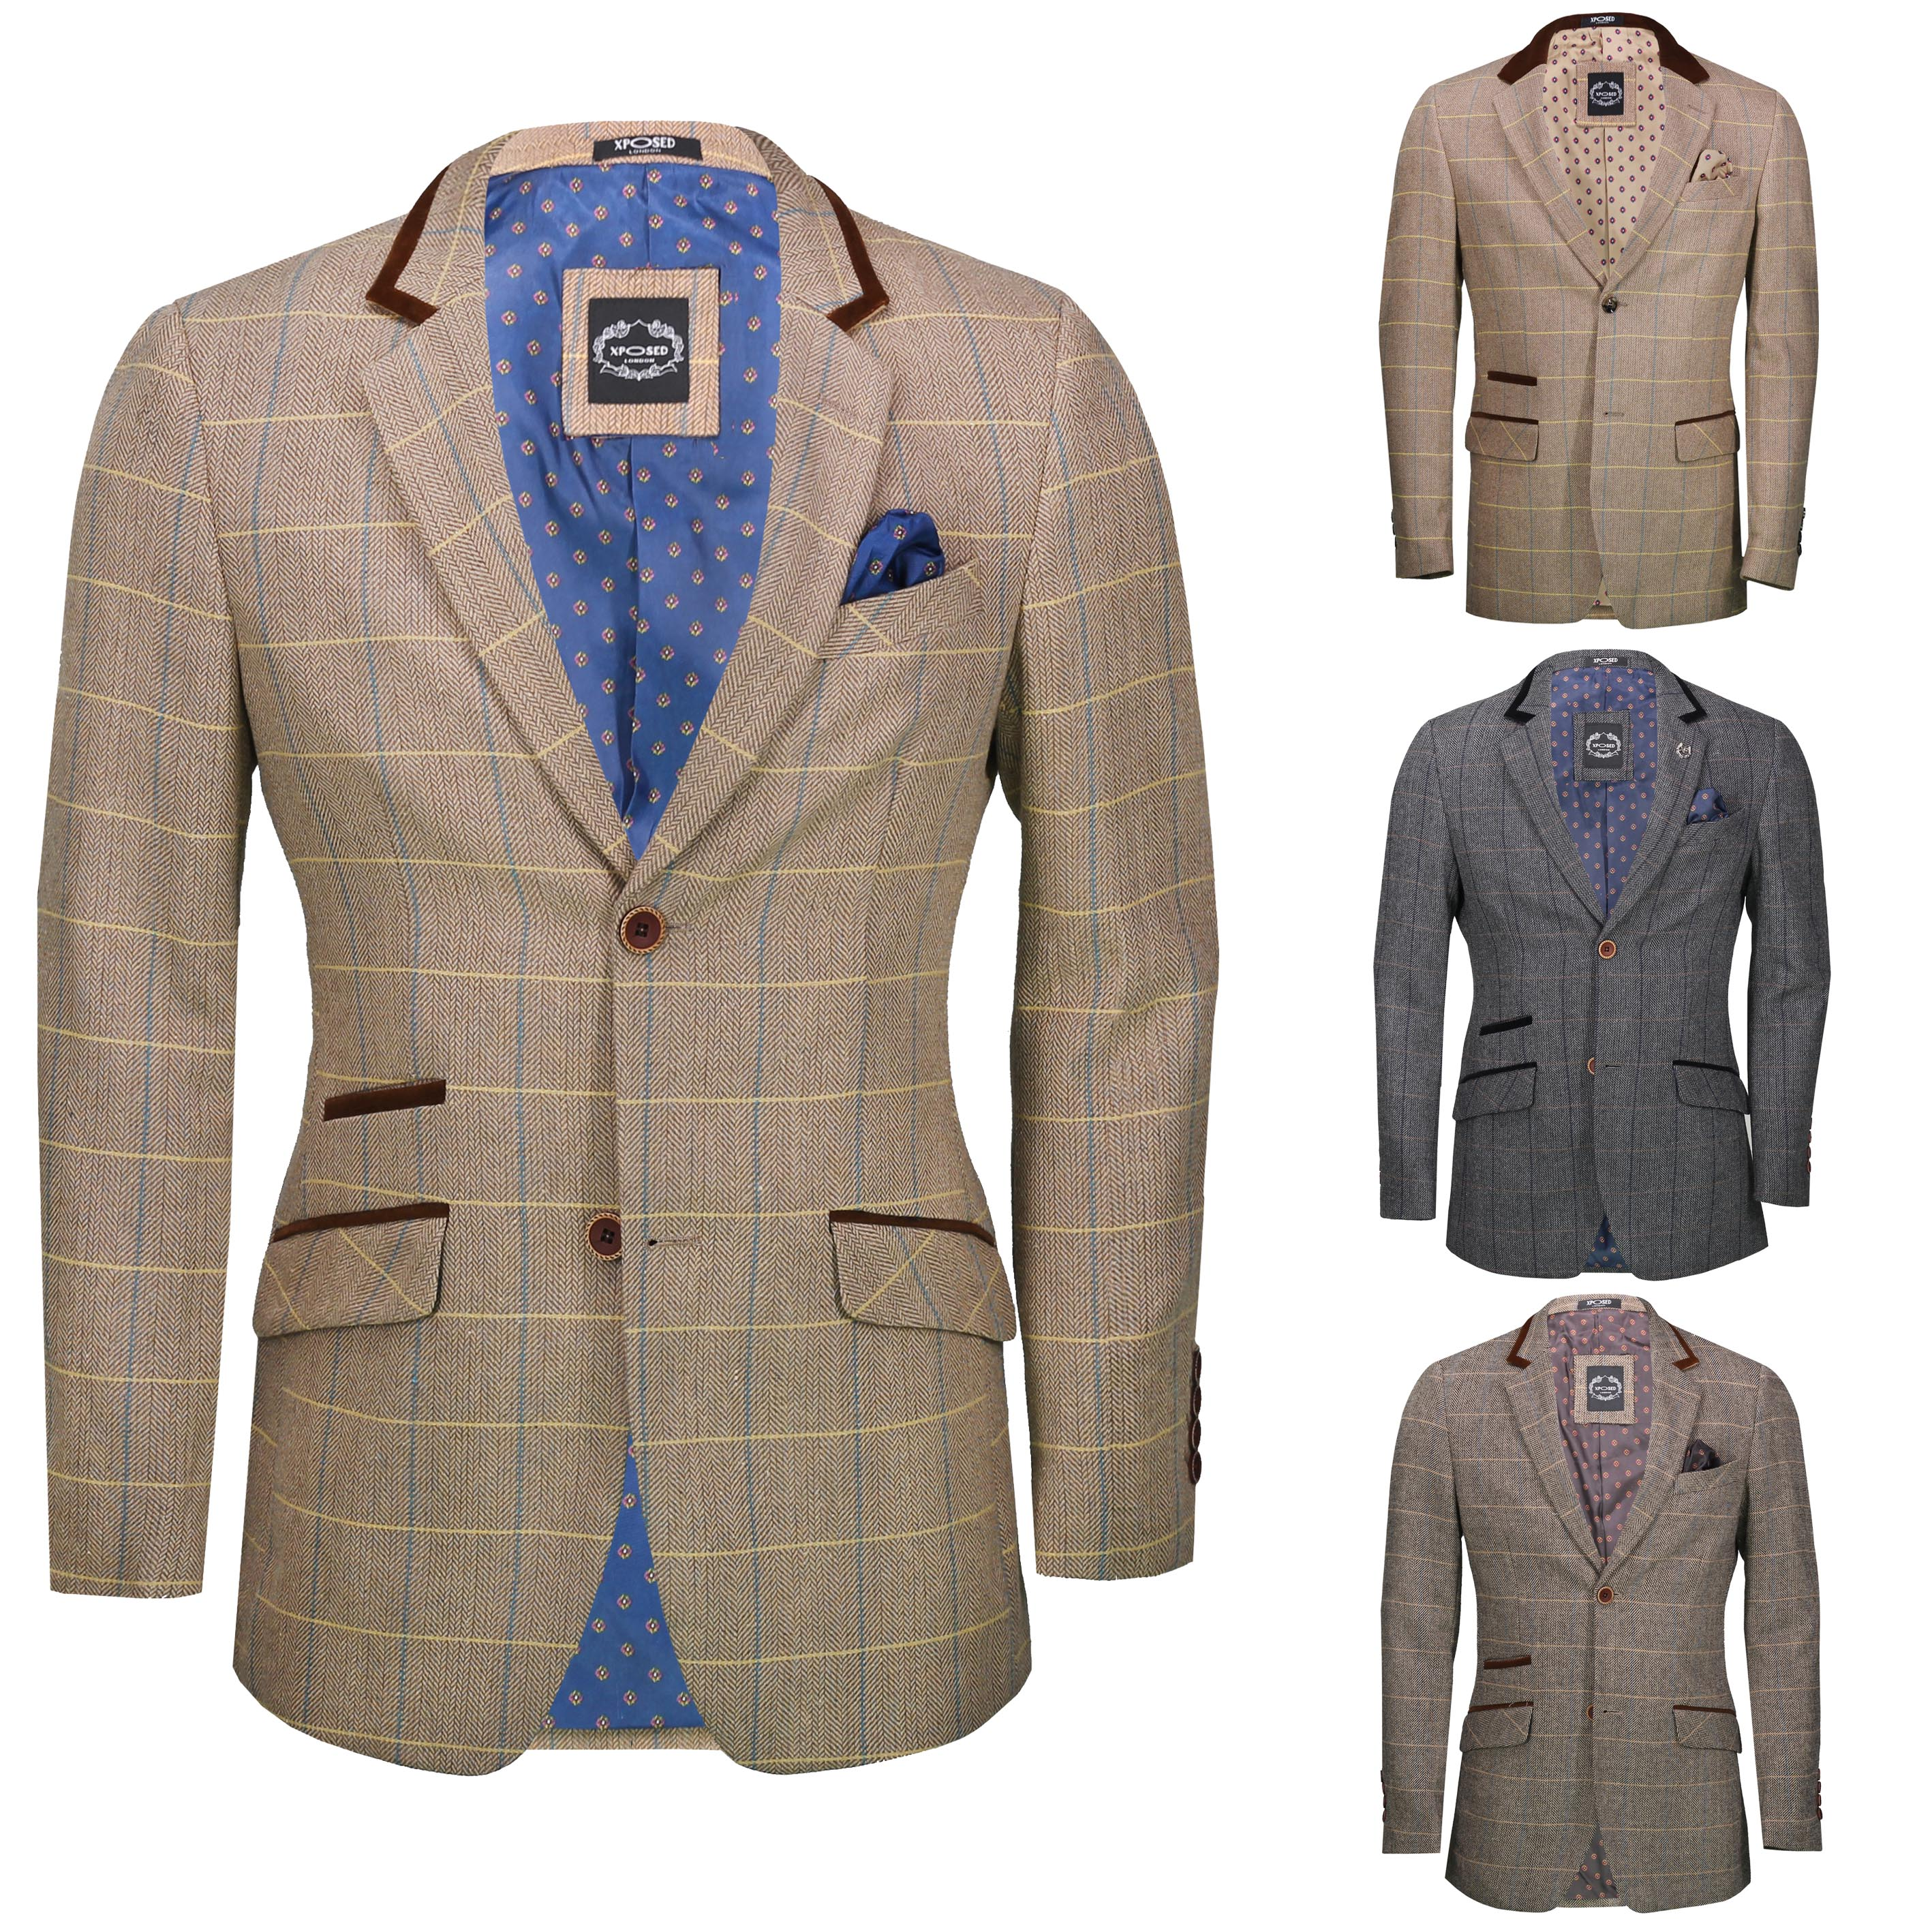 bedbda740ee9 Details about Mens Vintage Tweed Herringbone Check Blazer Brown Grey Velvet  Collar Elbow Patch